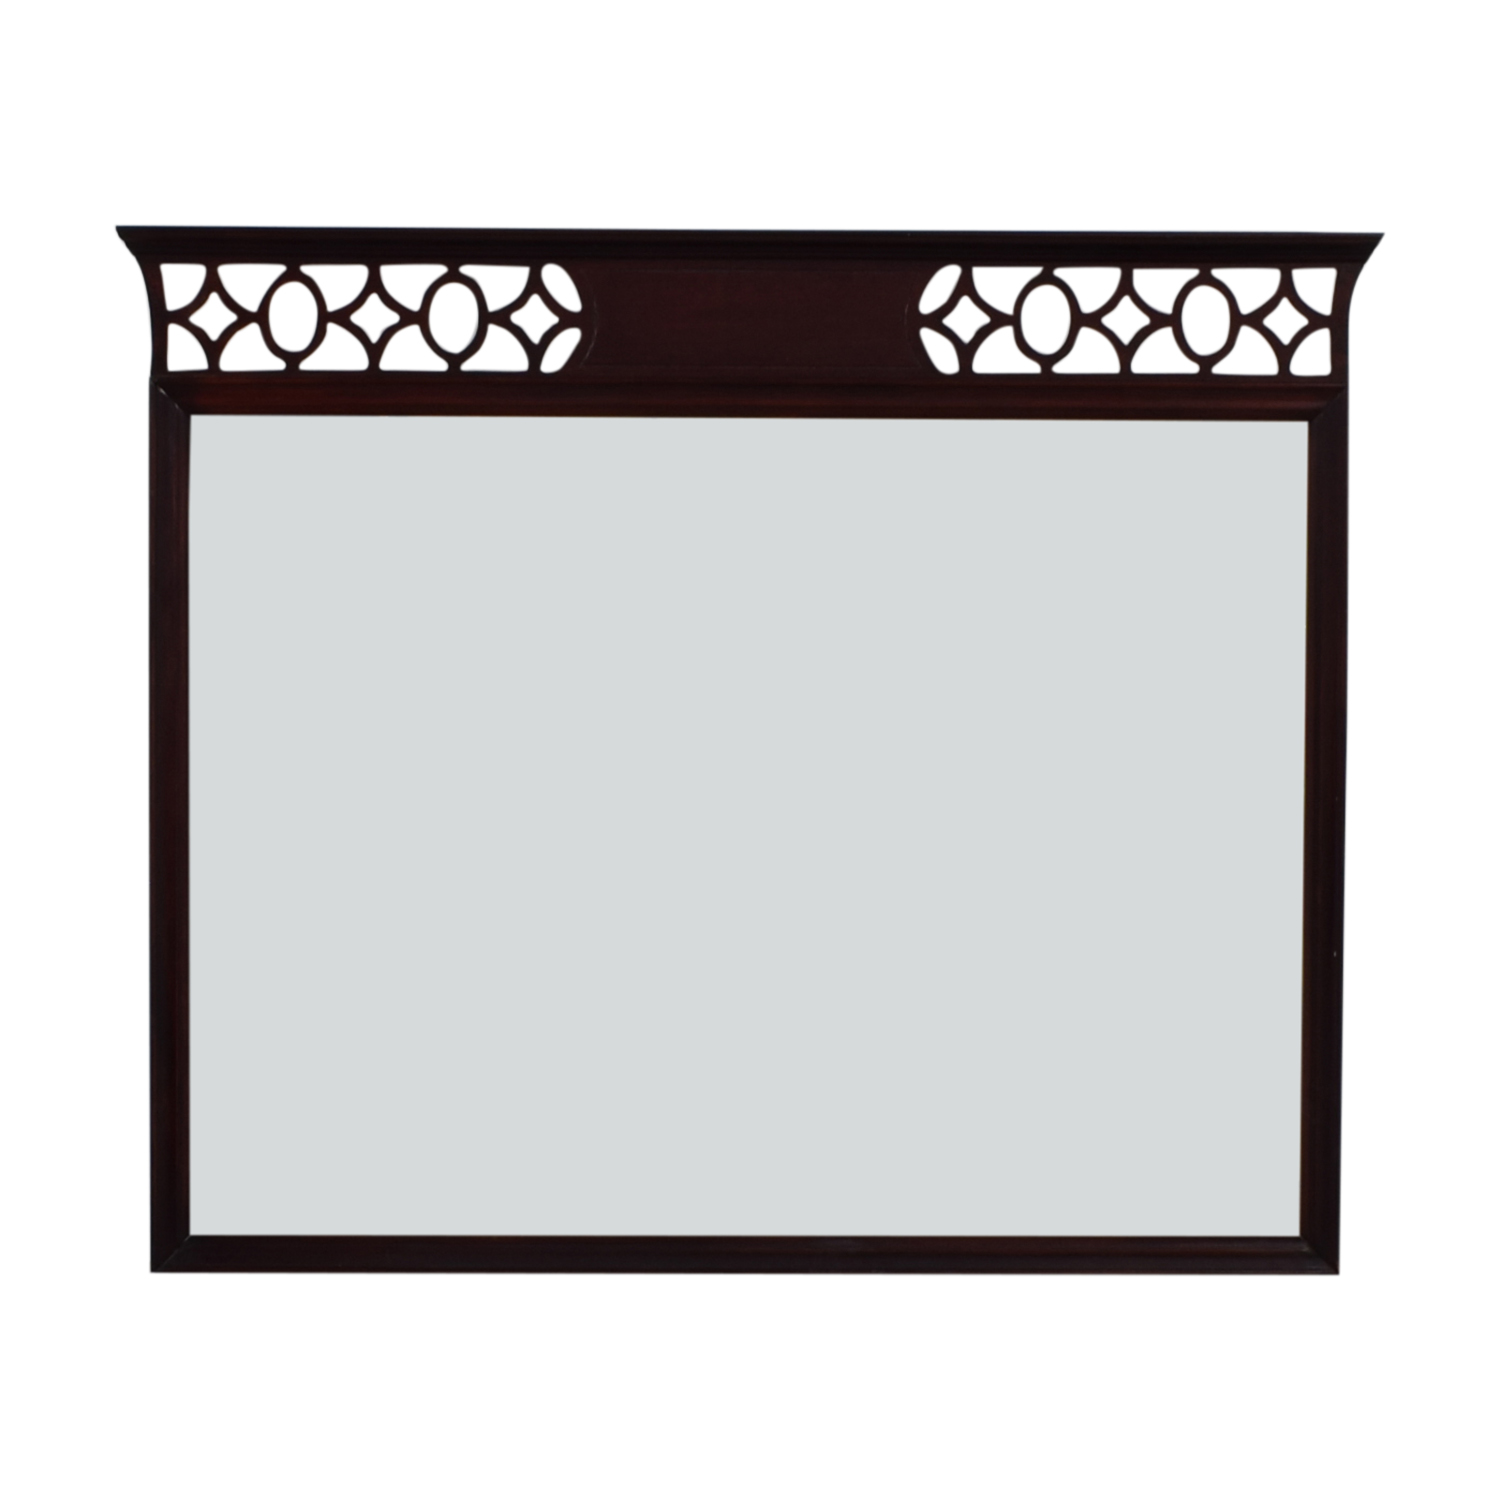 shop Vintage Diamond Border Mirror  Decor